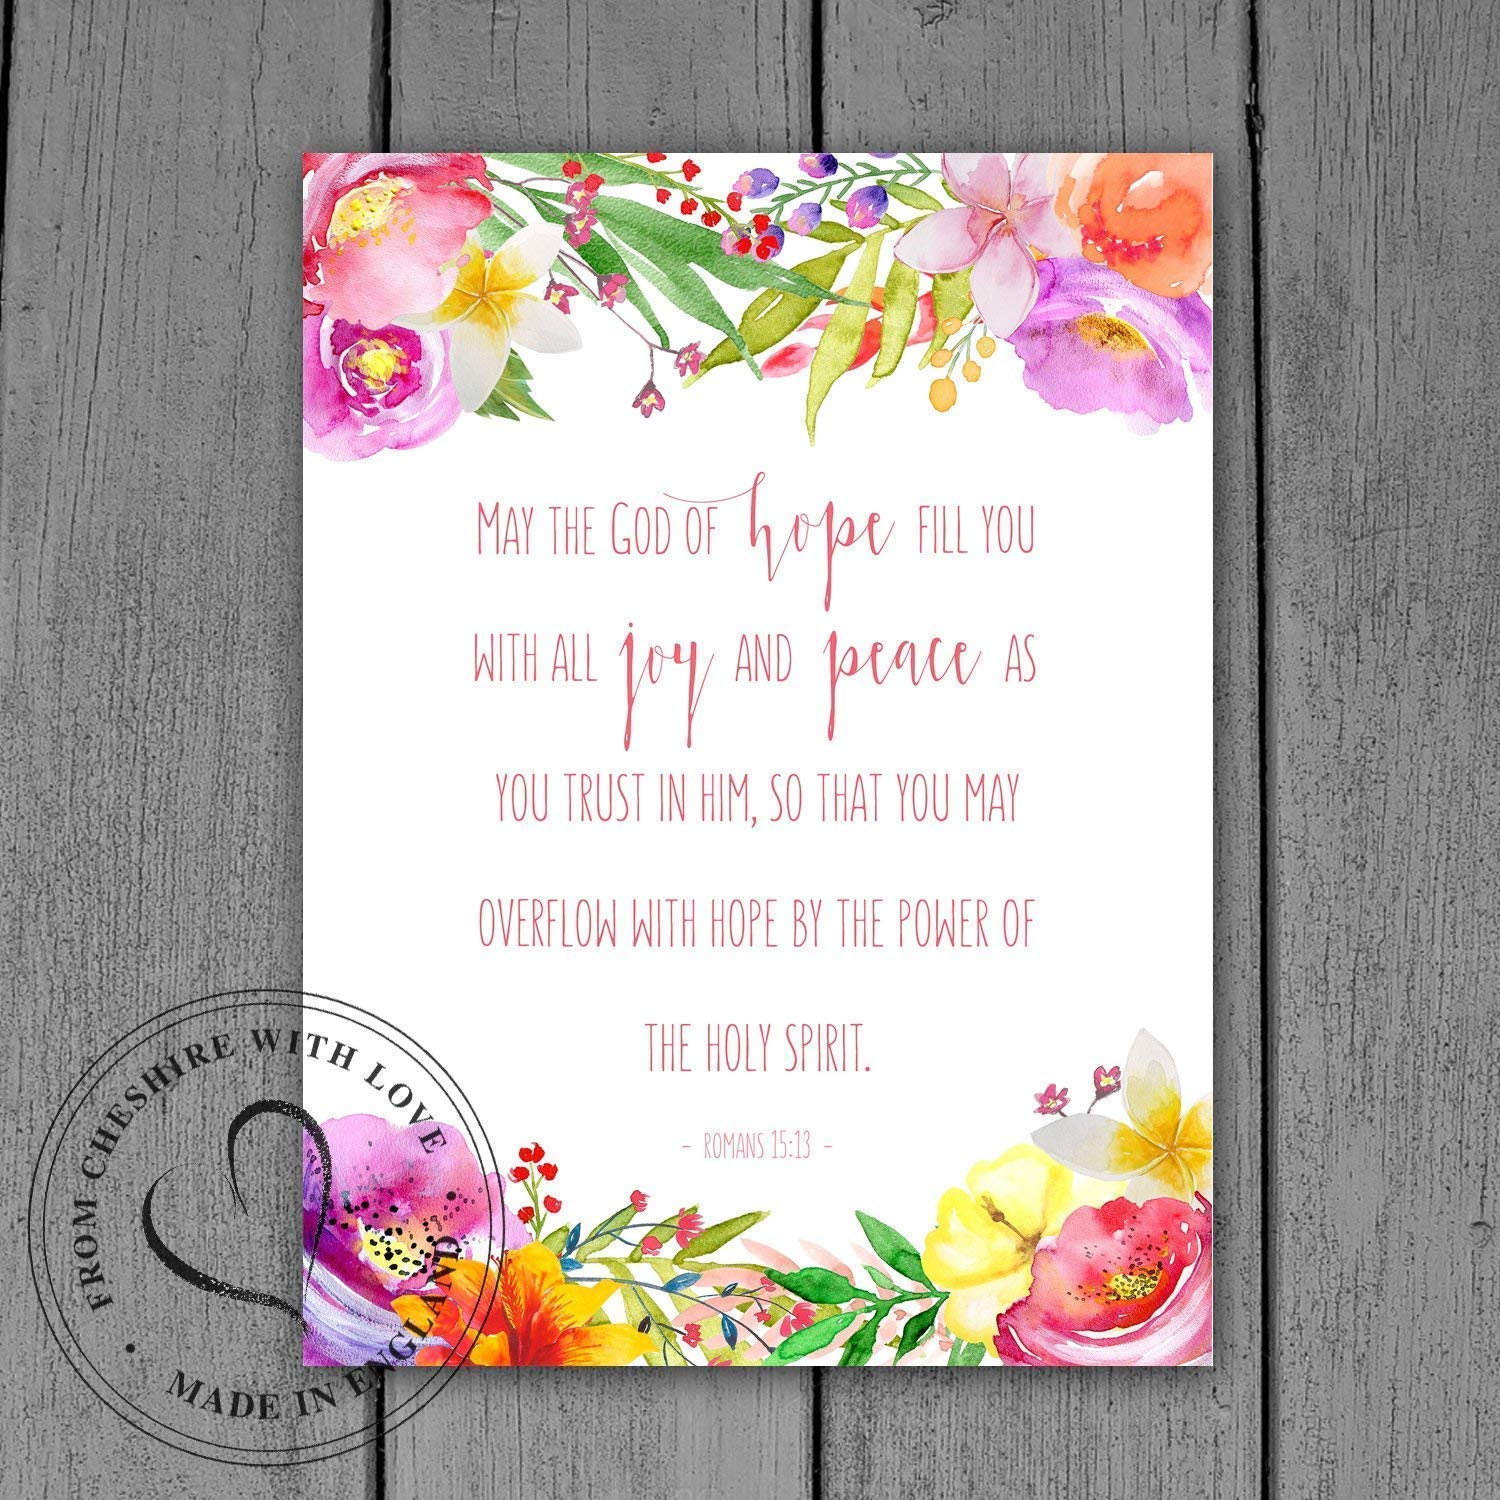 Romans 15 13 Bible Verse Print May The God Of Hope Fill You With All Joy And Peace As You Trust In Him So That You May Overflow With Hope By The